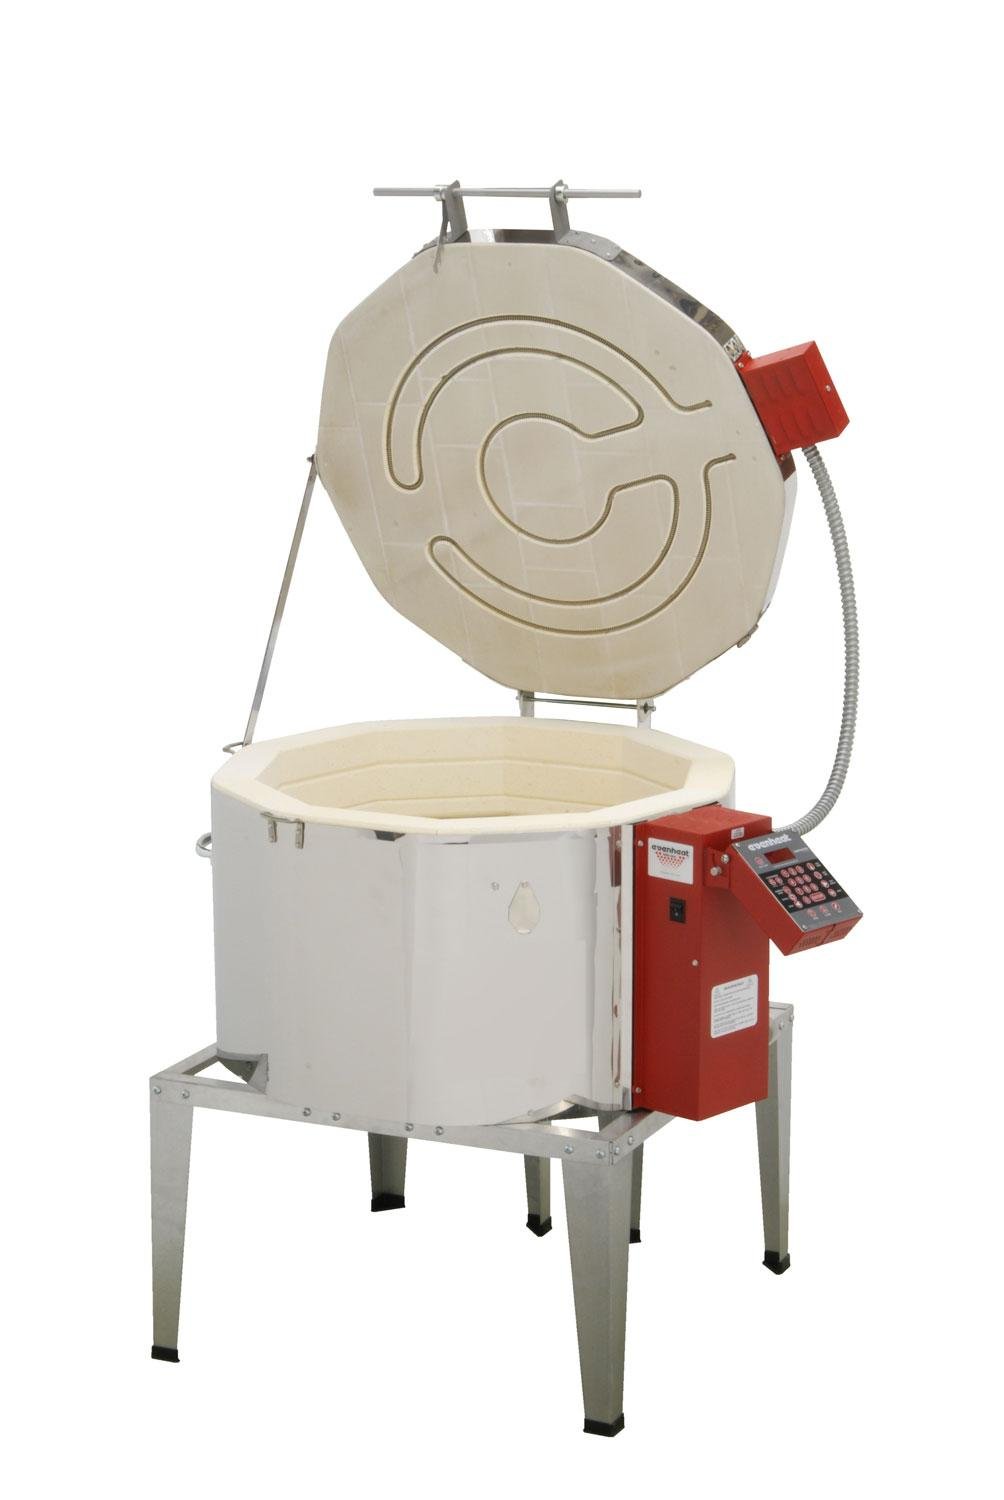 GTS 23-13 23 Floor Kiln with RampMaster with Express Mode